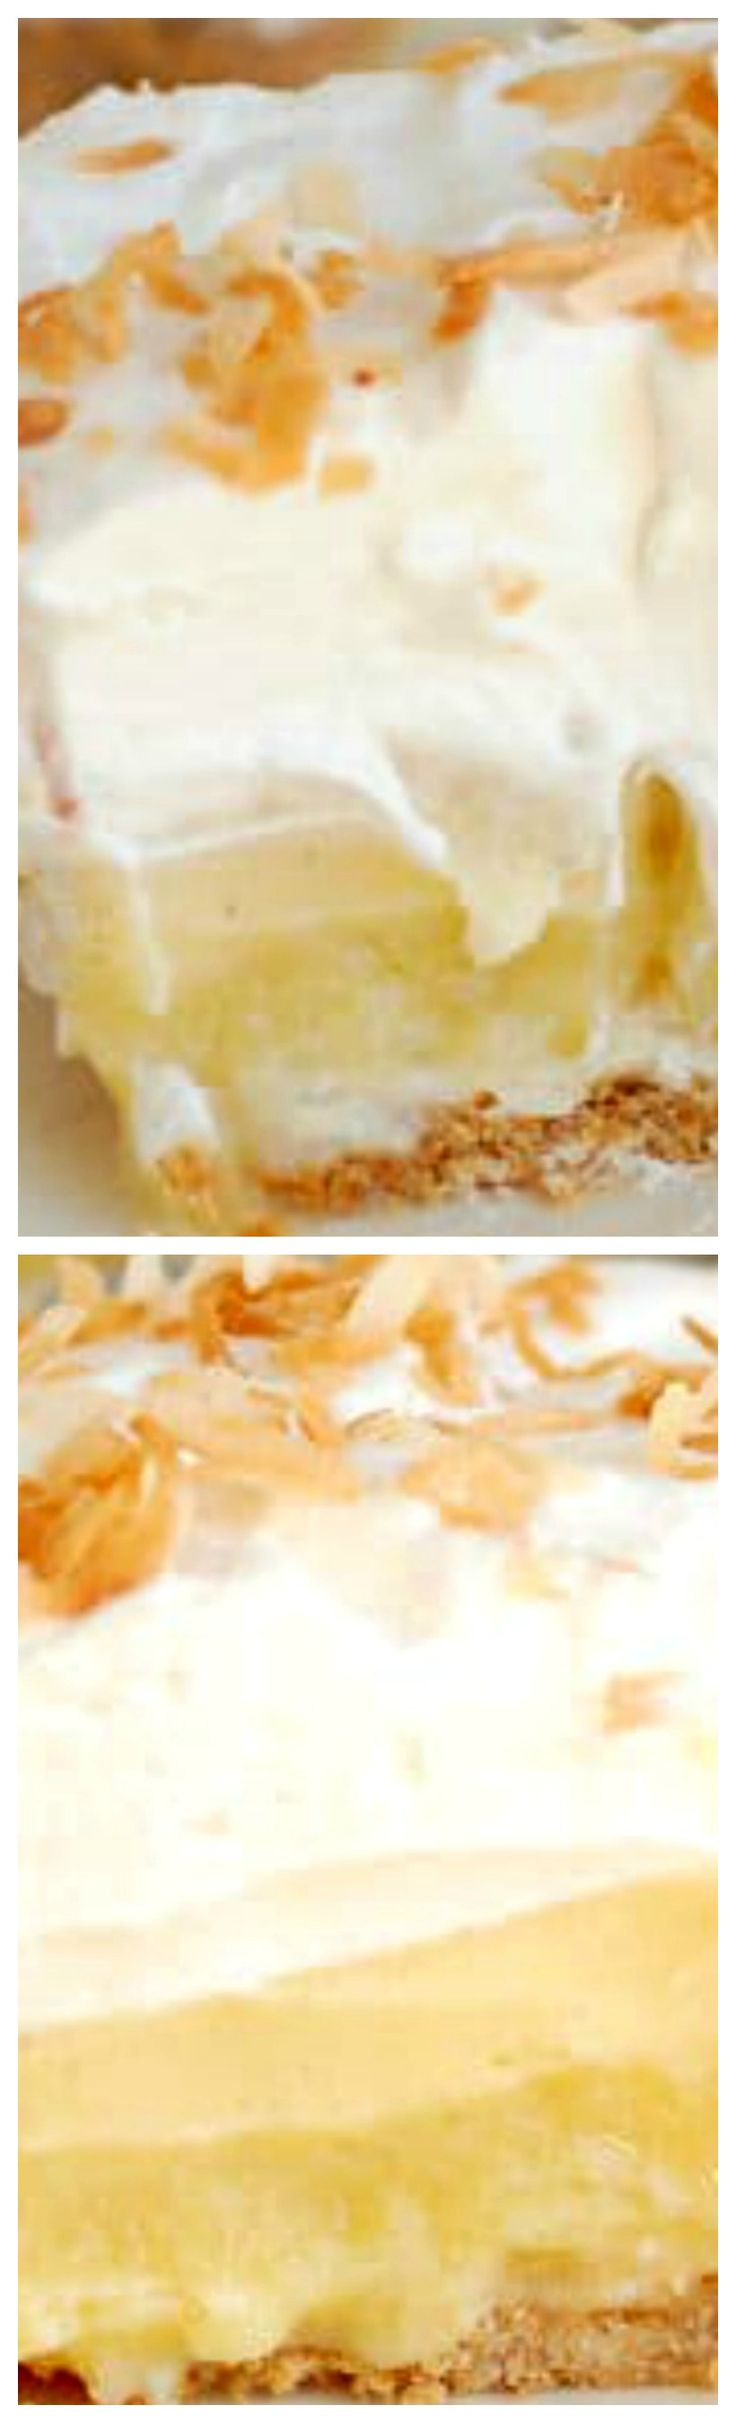 "Pina Colada Pie (with or without rum) ~ A toasted coconut-graham cracker crust is filled with a layer of pineapple/rum curd, a layer of coconut/rum cream and topped with a mound of rum-spiked whipped cream and, finally, a sprinkle of toasted coconut... Alcohol not your thing? Ok, make it a ""Virgin"" Colada Pie by leaving out the rum."